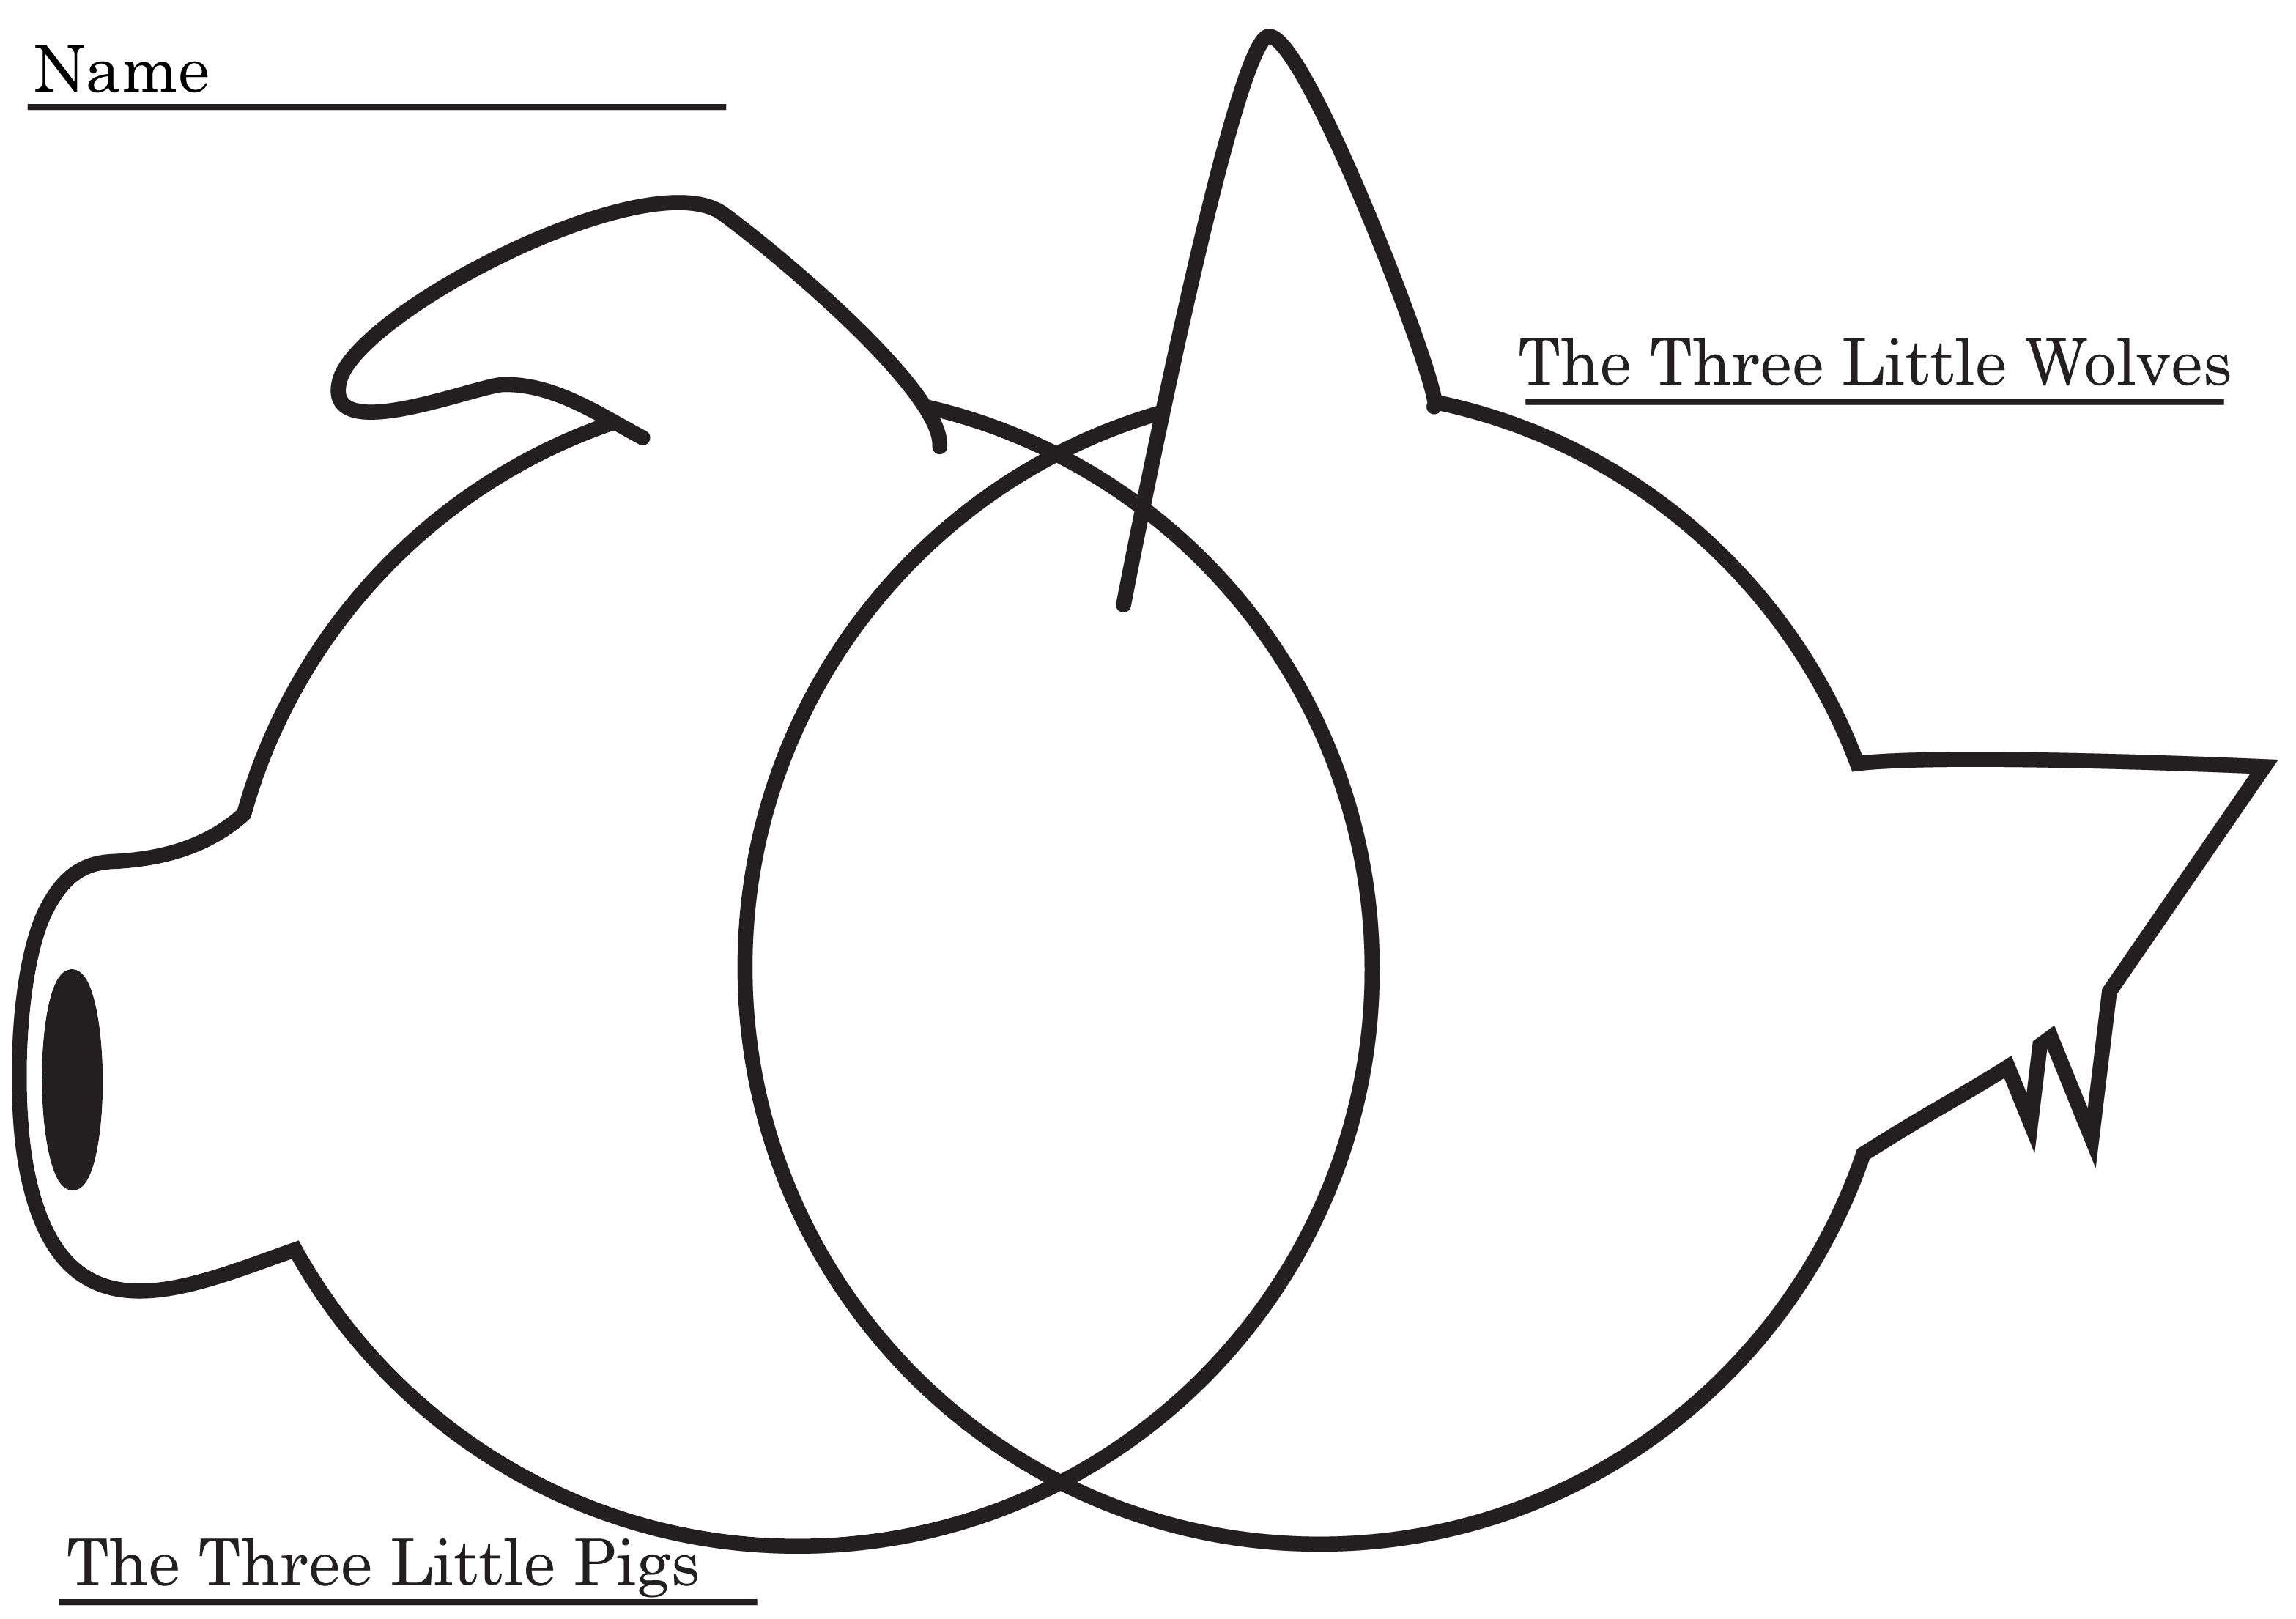 Venn Diagram For Three Little Pigs And Three Little Wolves